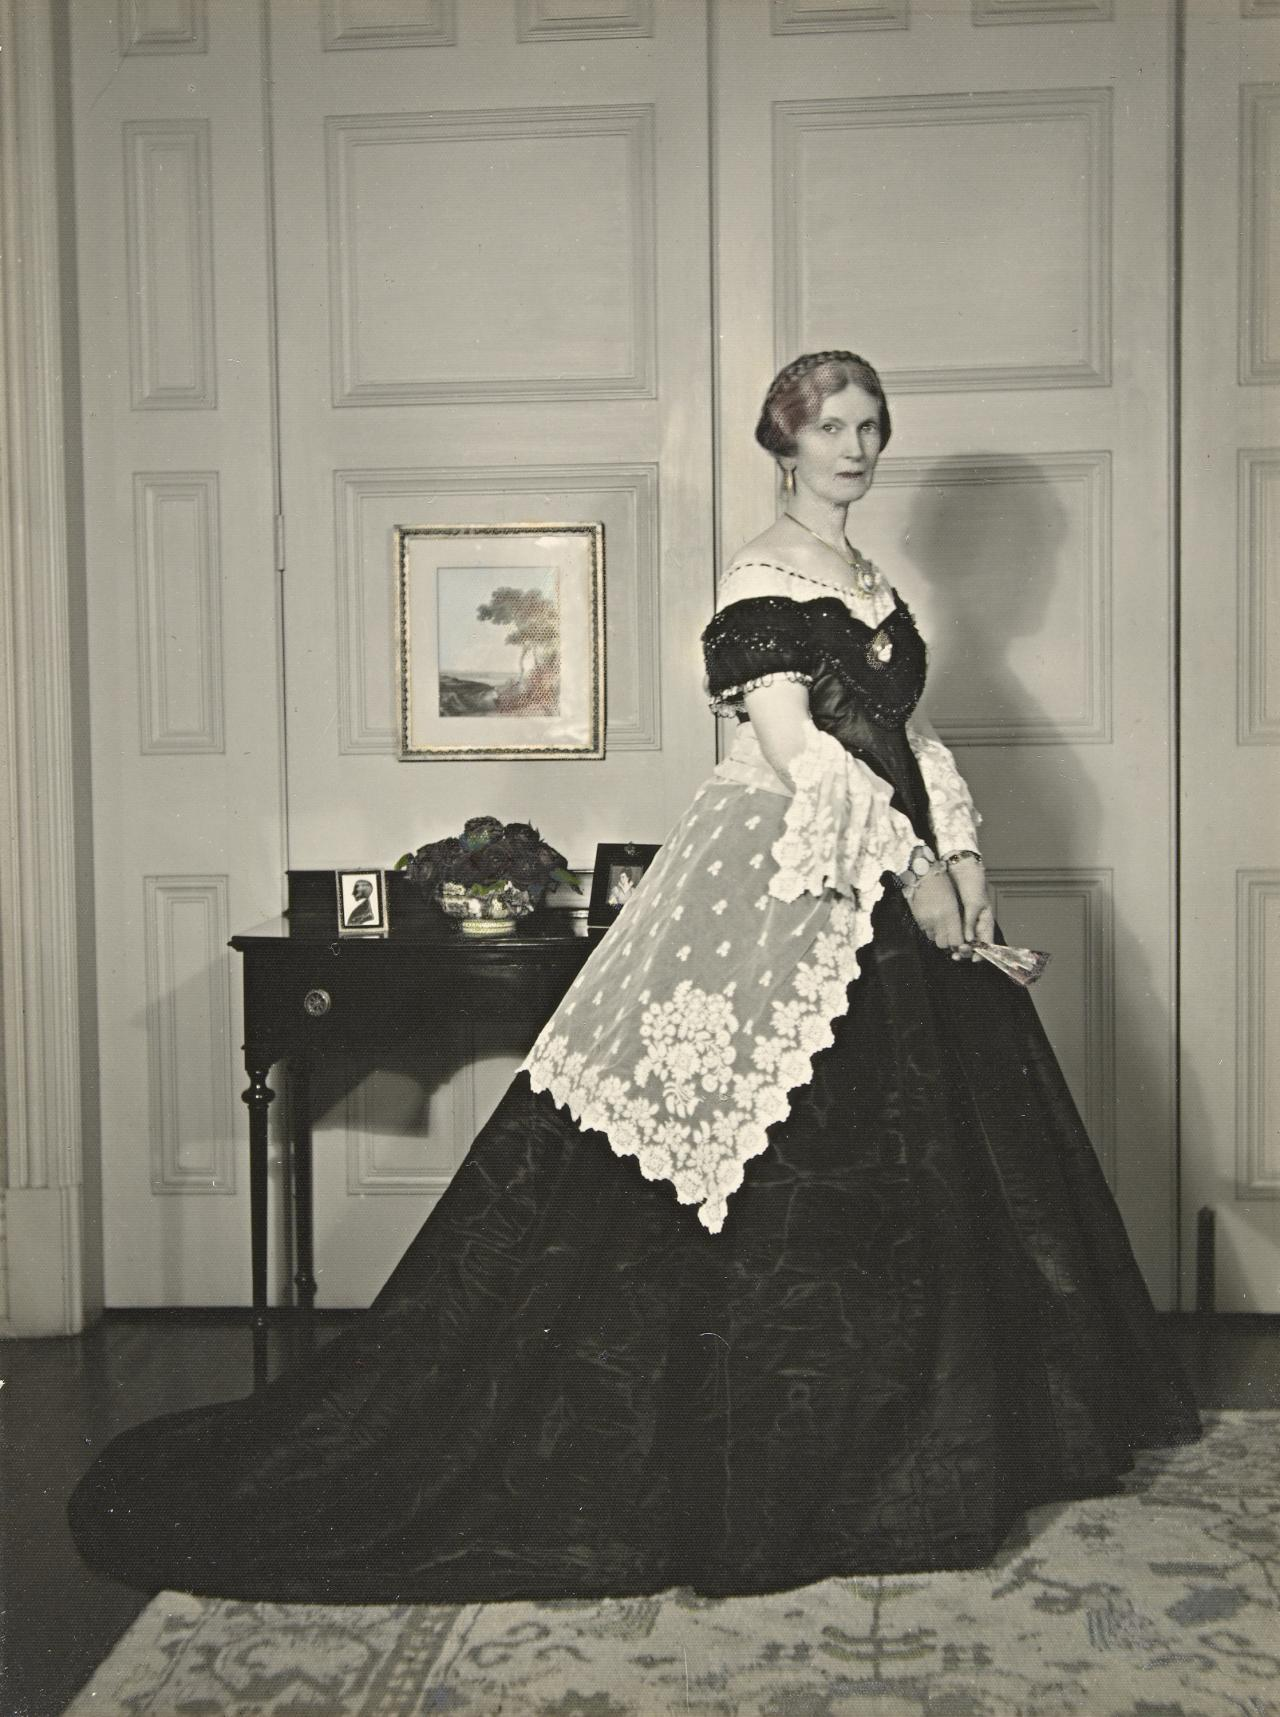 Mrs E. W. Outhwaite dressed as Mrs David Thomas, attending the Pioneers' Ball for the Victorian Centenary